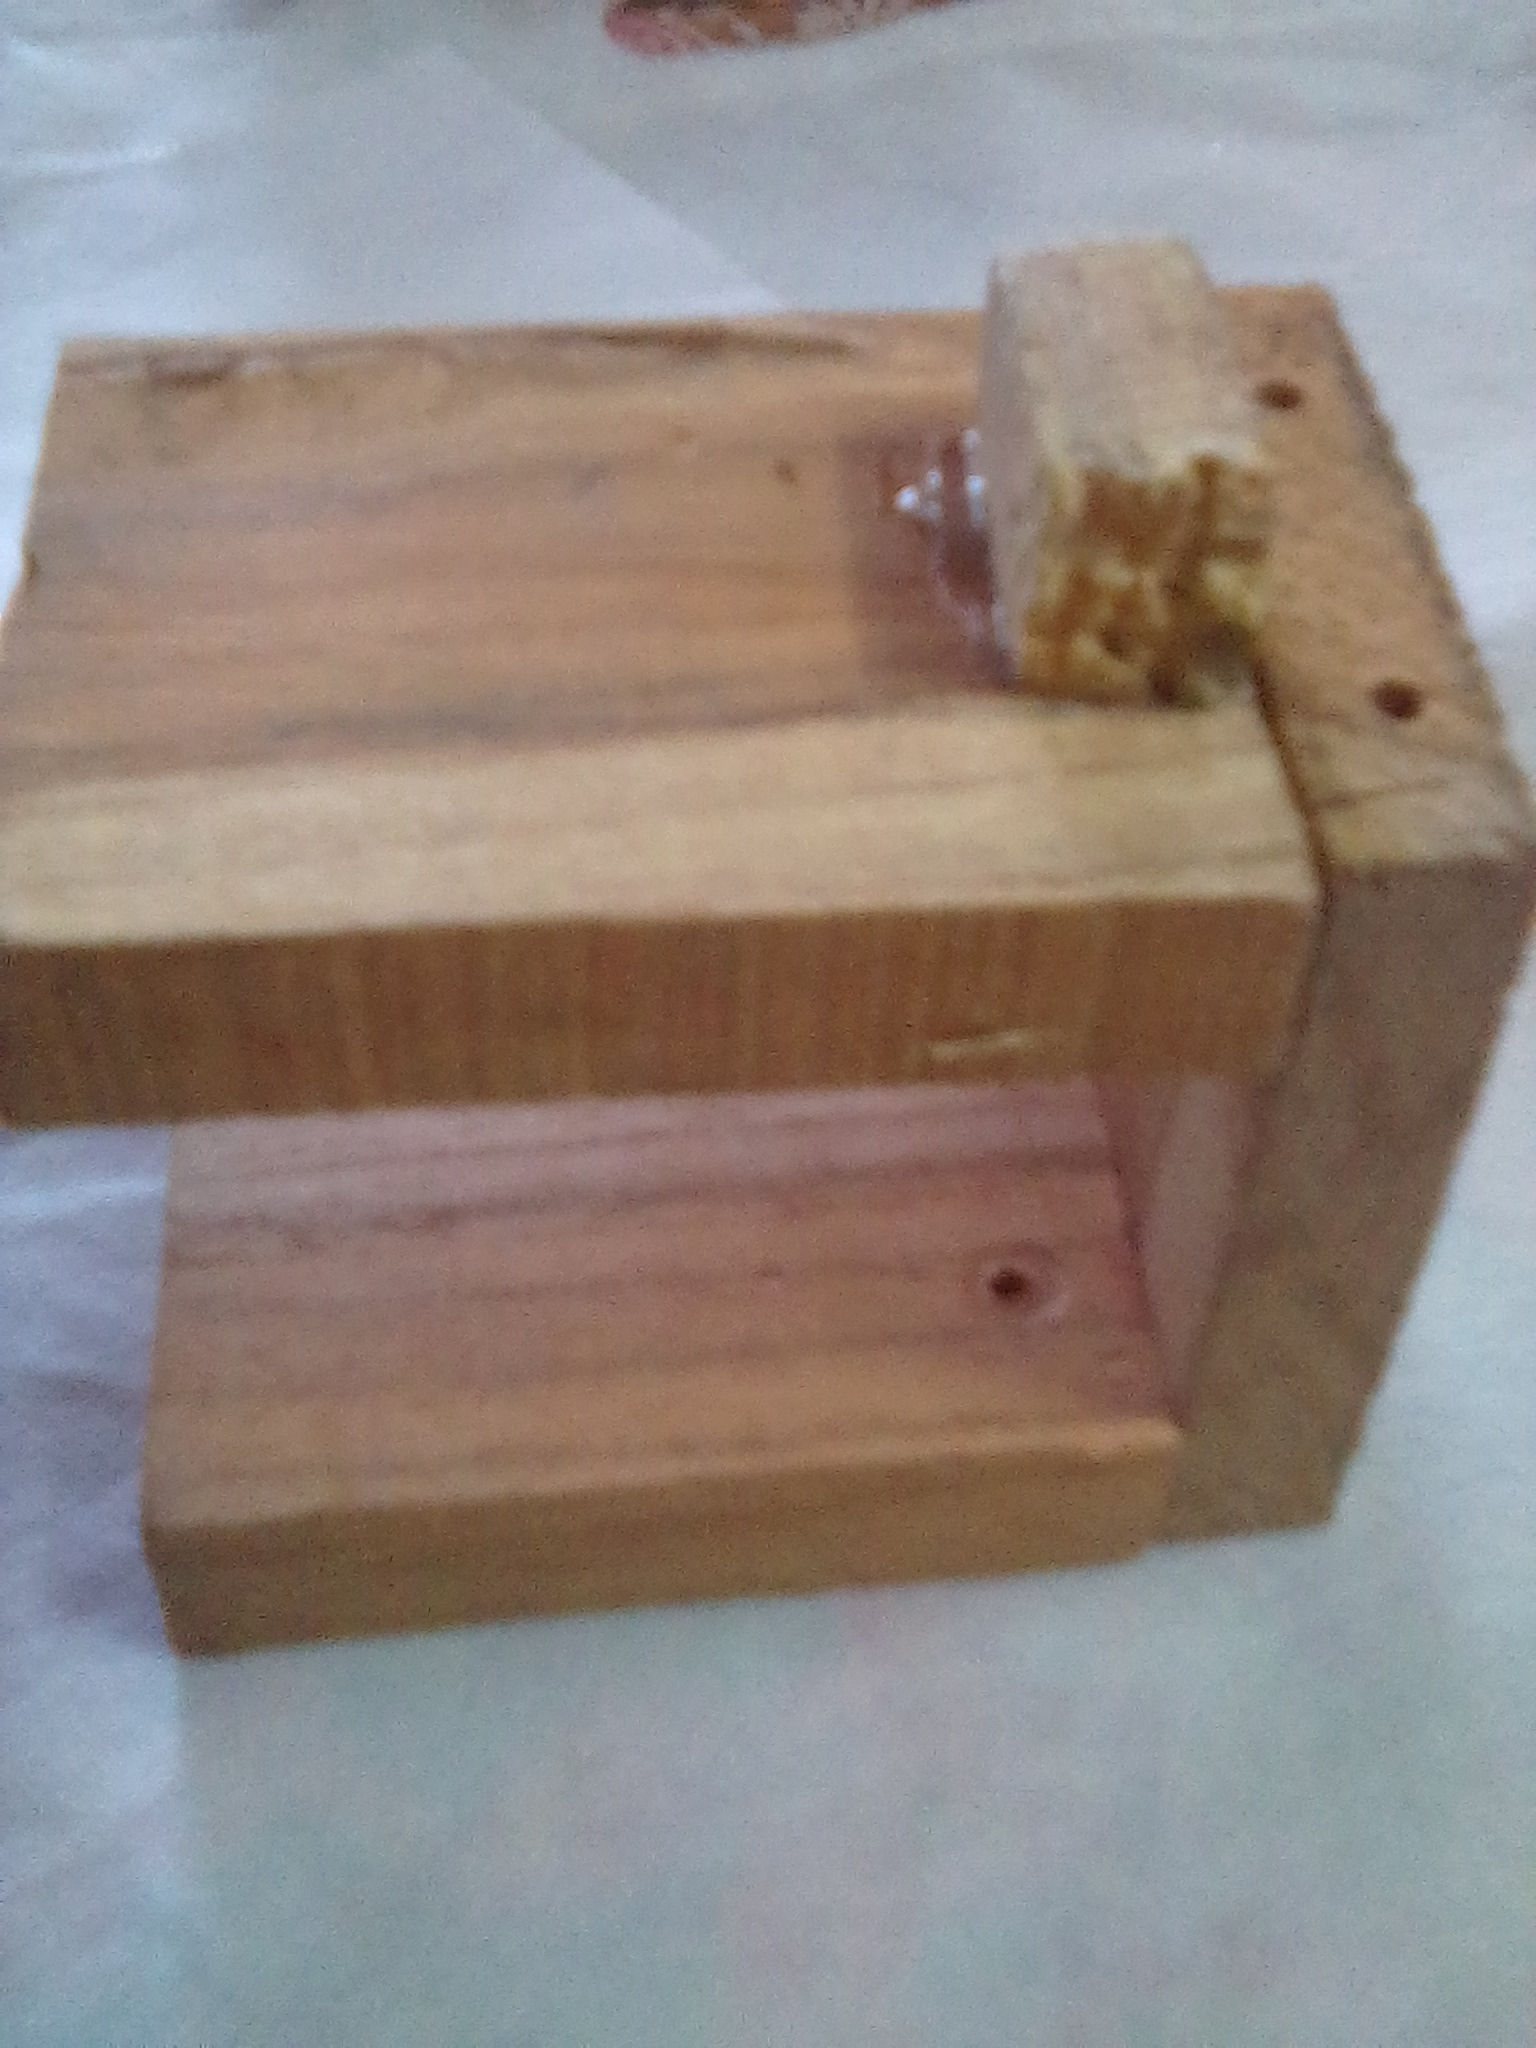 Picture of NOW WE PASTE SMALL PIECE OF WOOD.